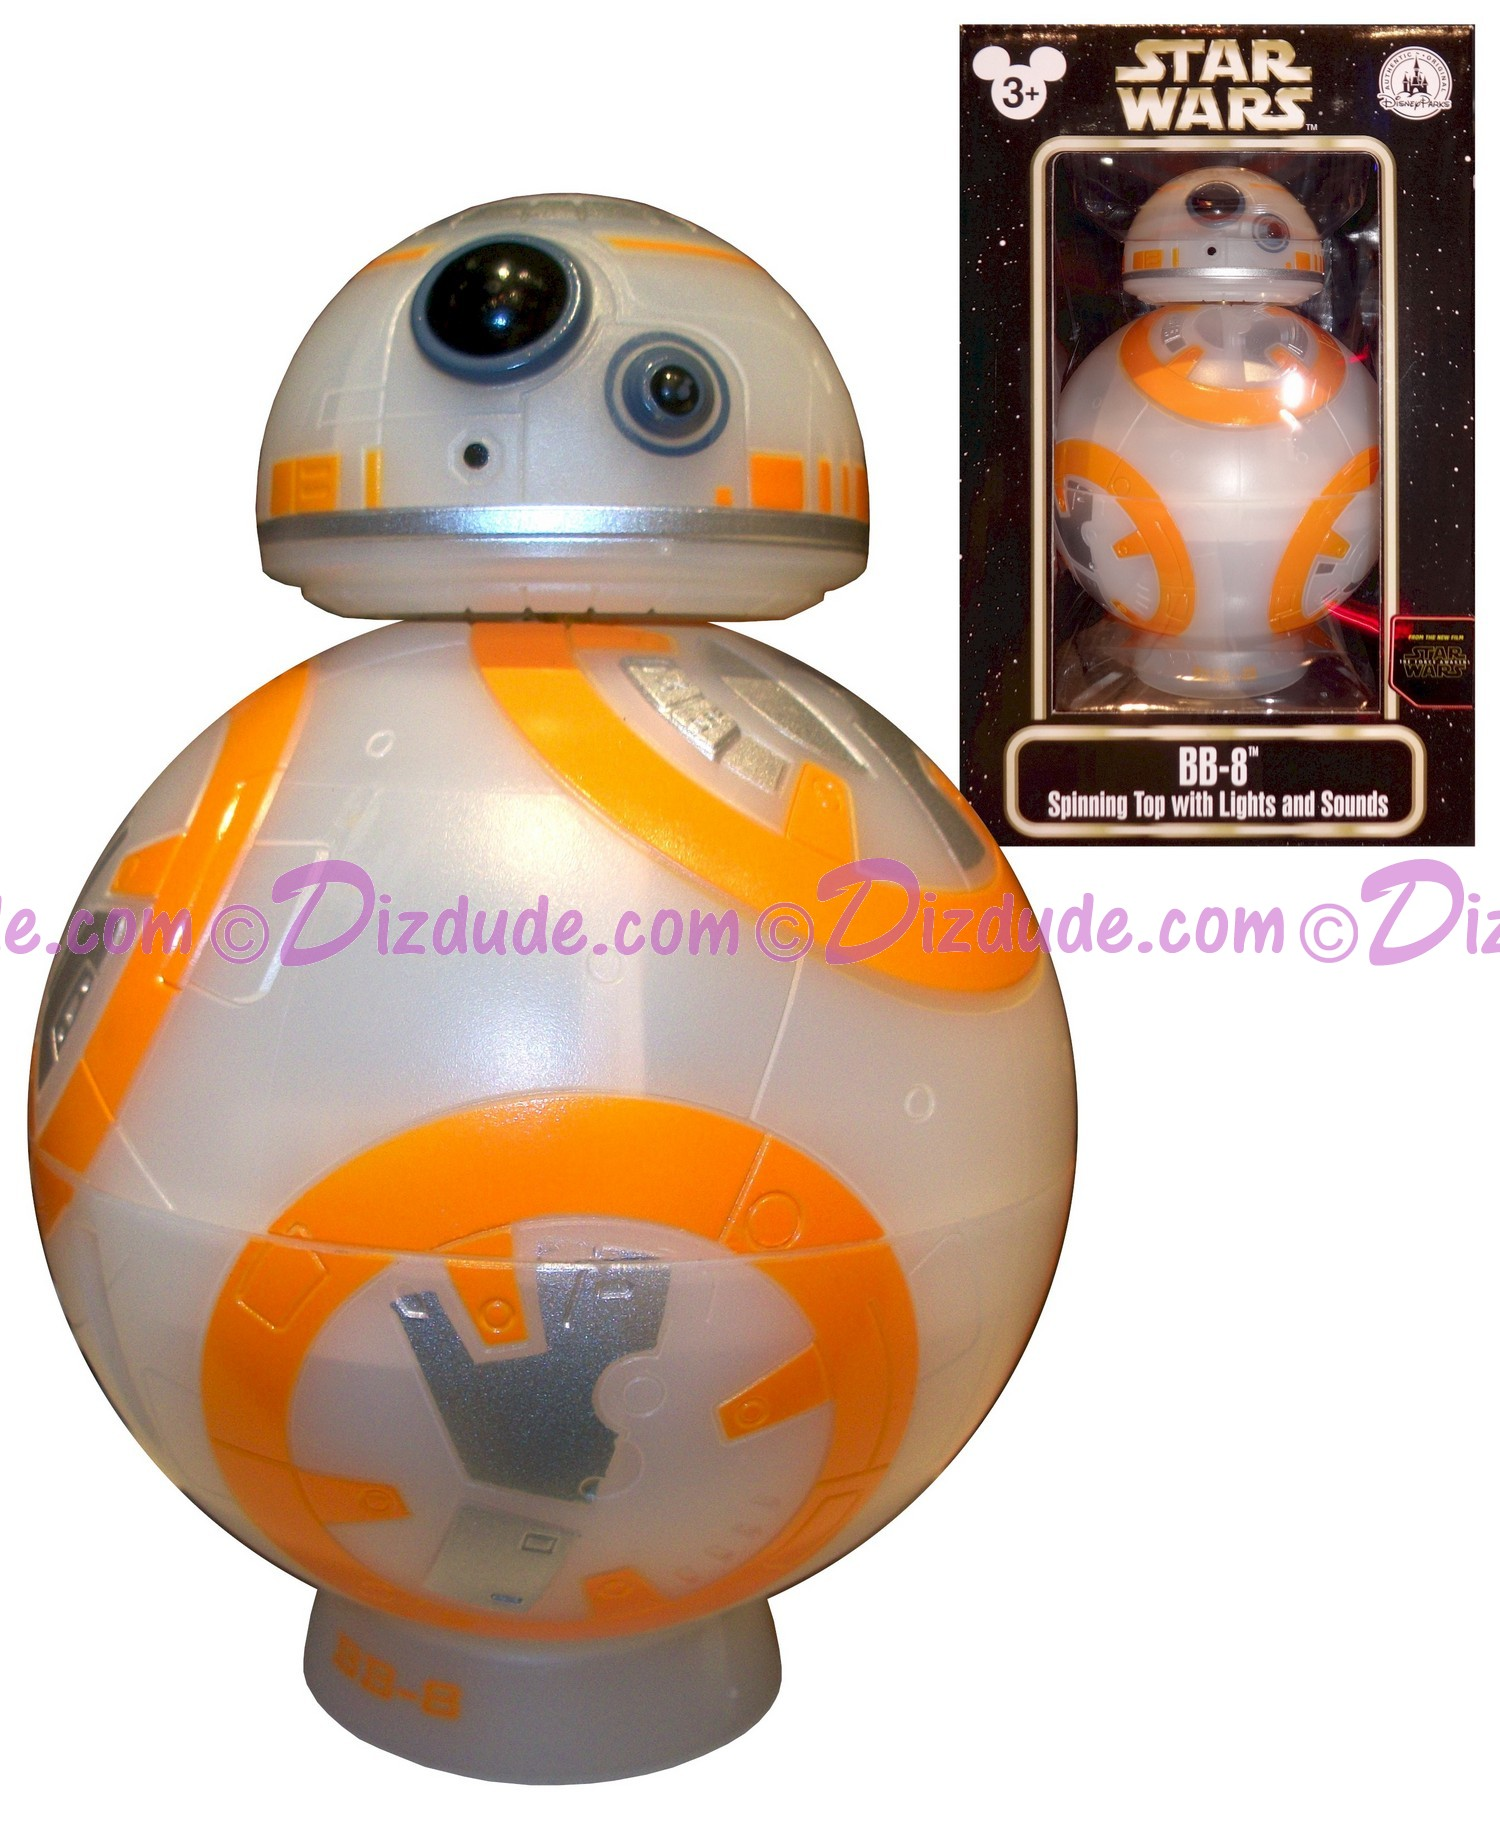 Disney Star Wars: The Force Awakens BB-8 (BB8) Spinning Top with Lights and Sounds